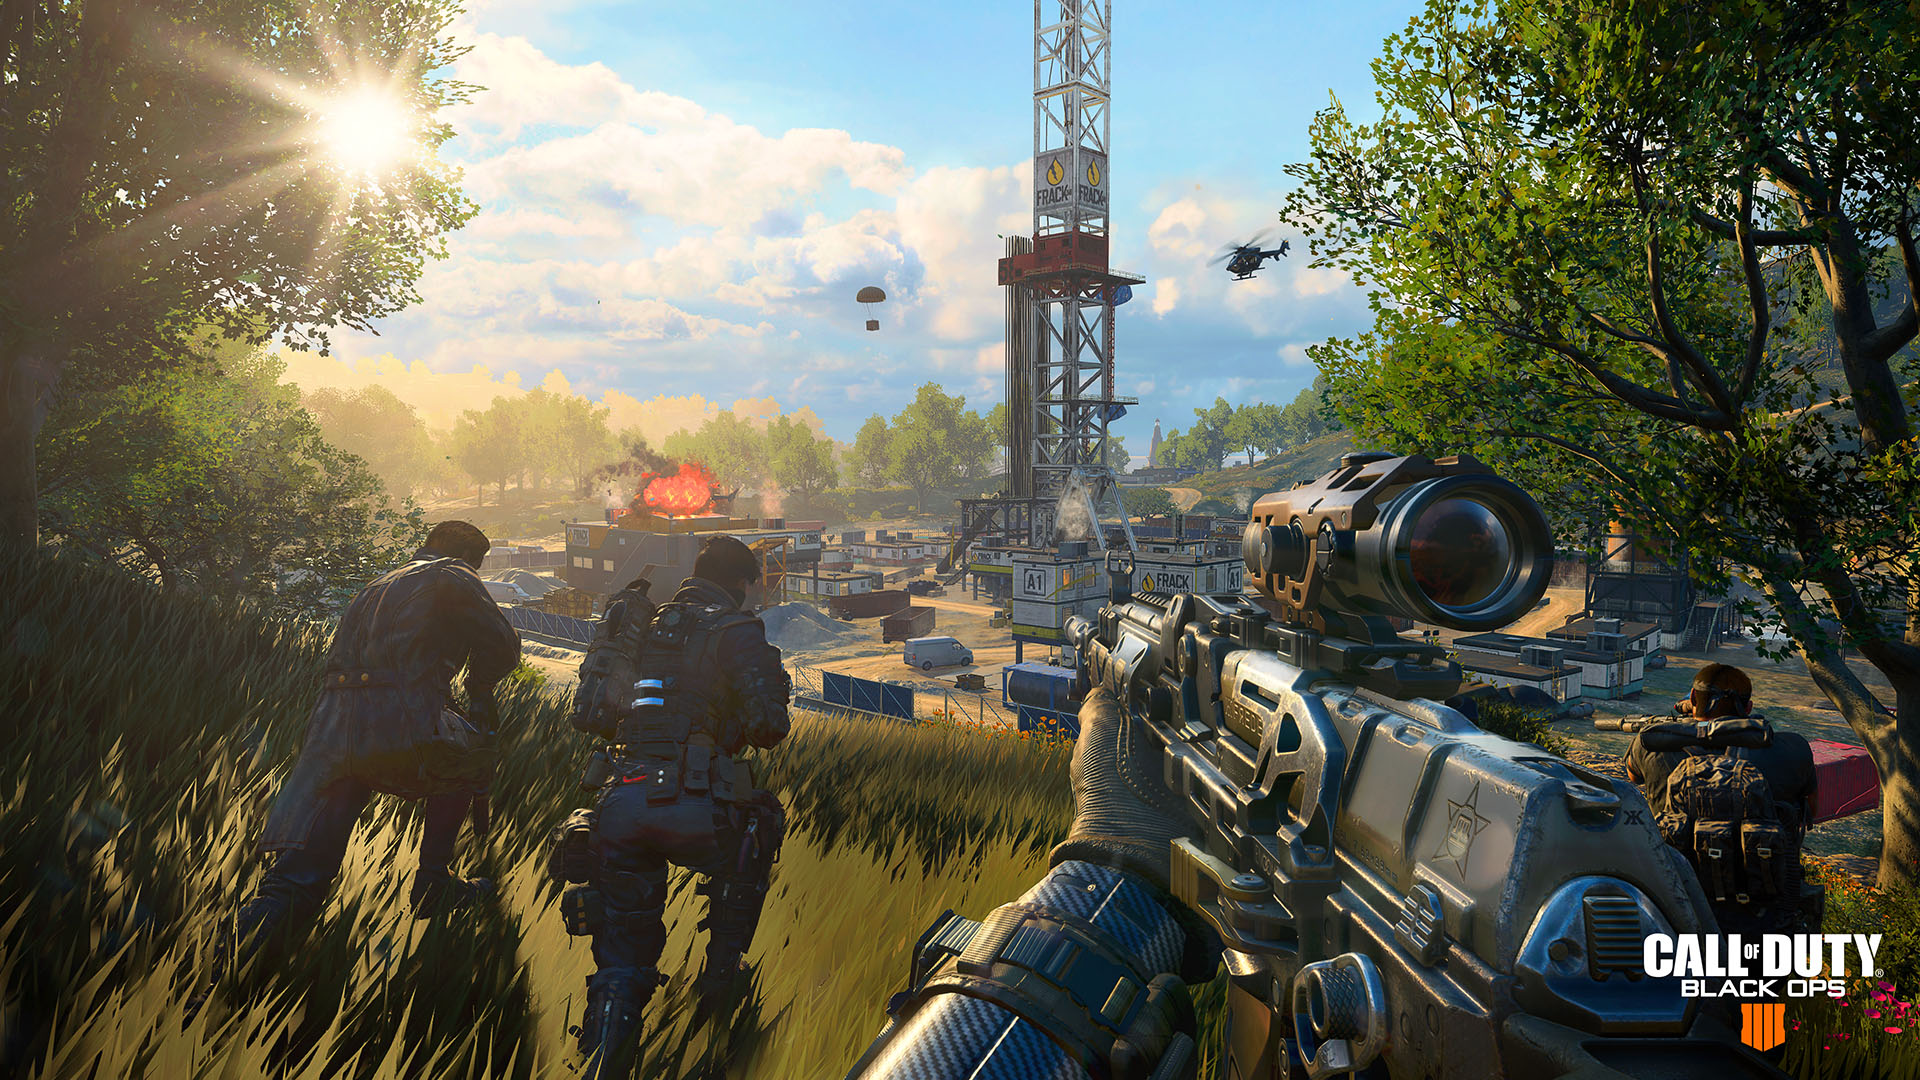 Call of Duty: Black Ops 4 Blackout squad